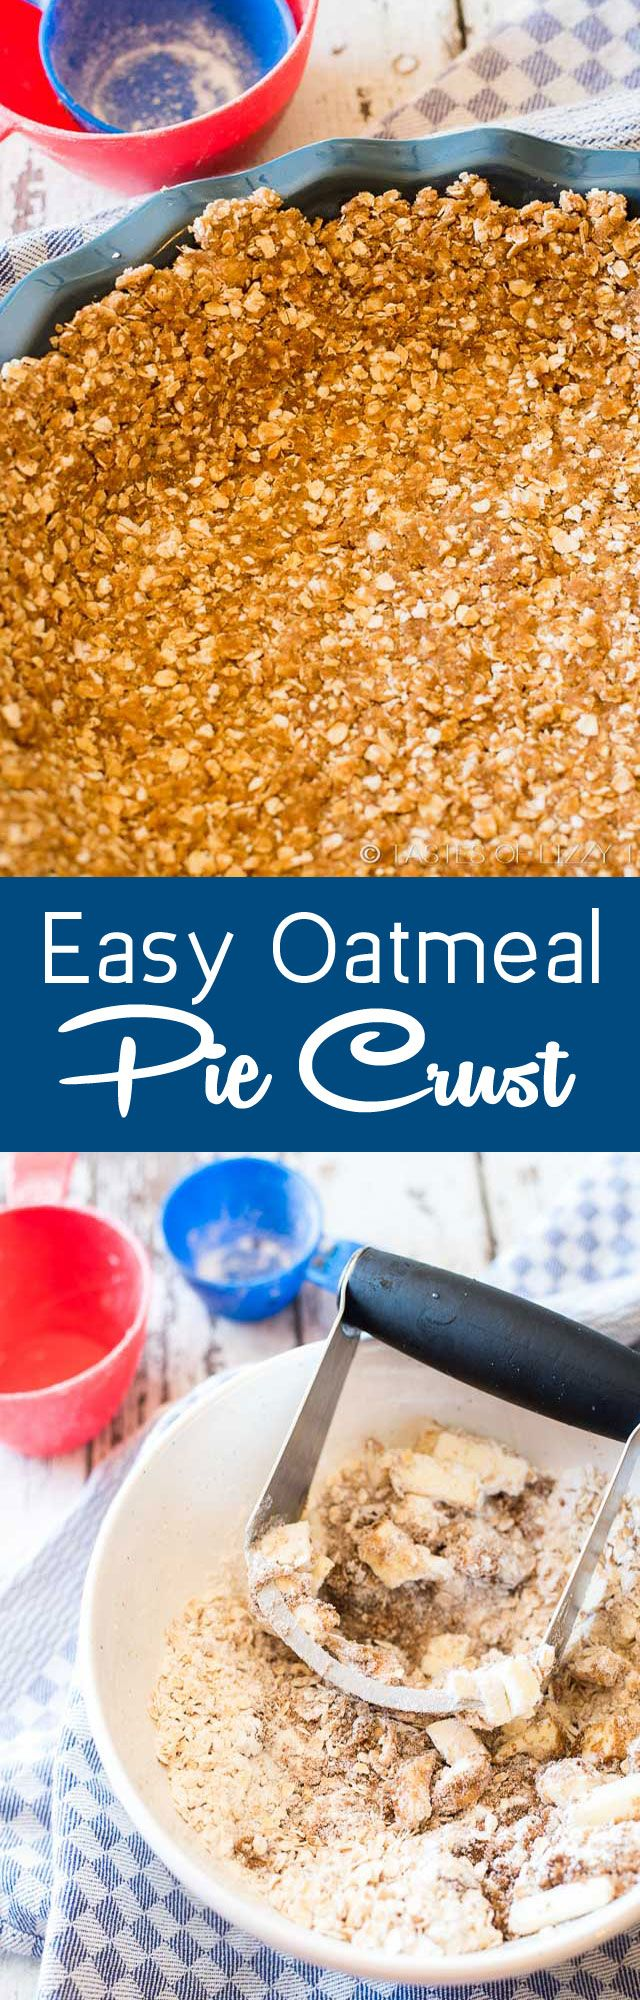 Tired of graham cracker crusts? This 5 ingredient, brown sugar, easy oatmeal pie crust makes the most delicious and unique base to creamy, no-bake pies.